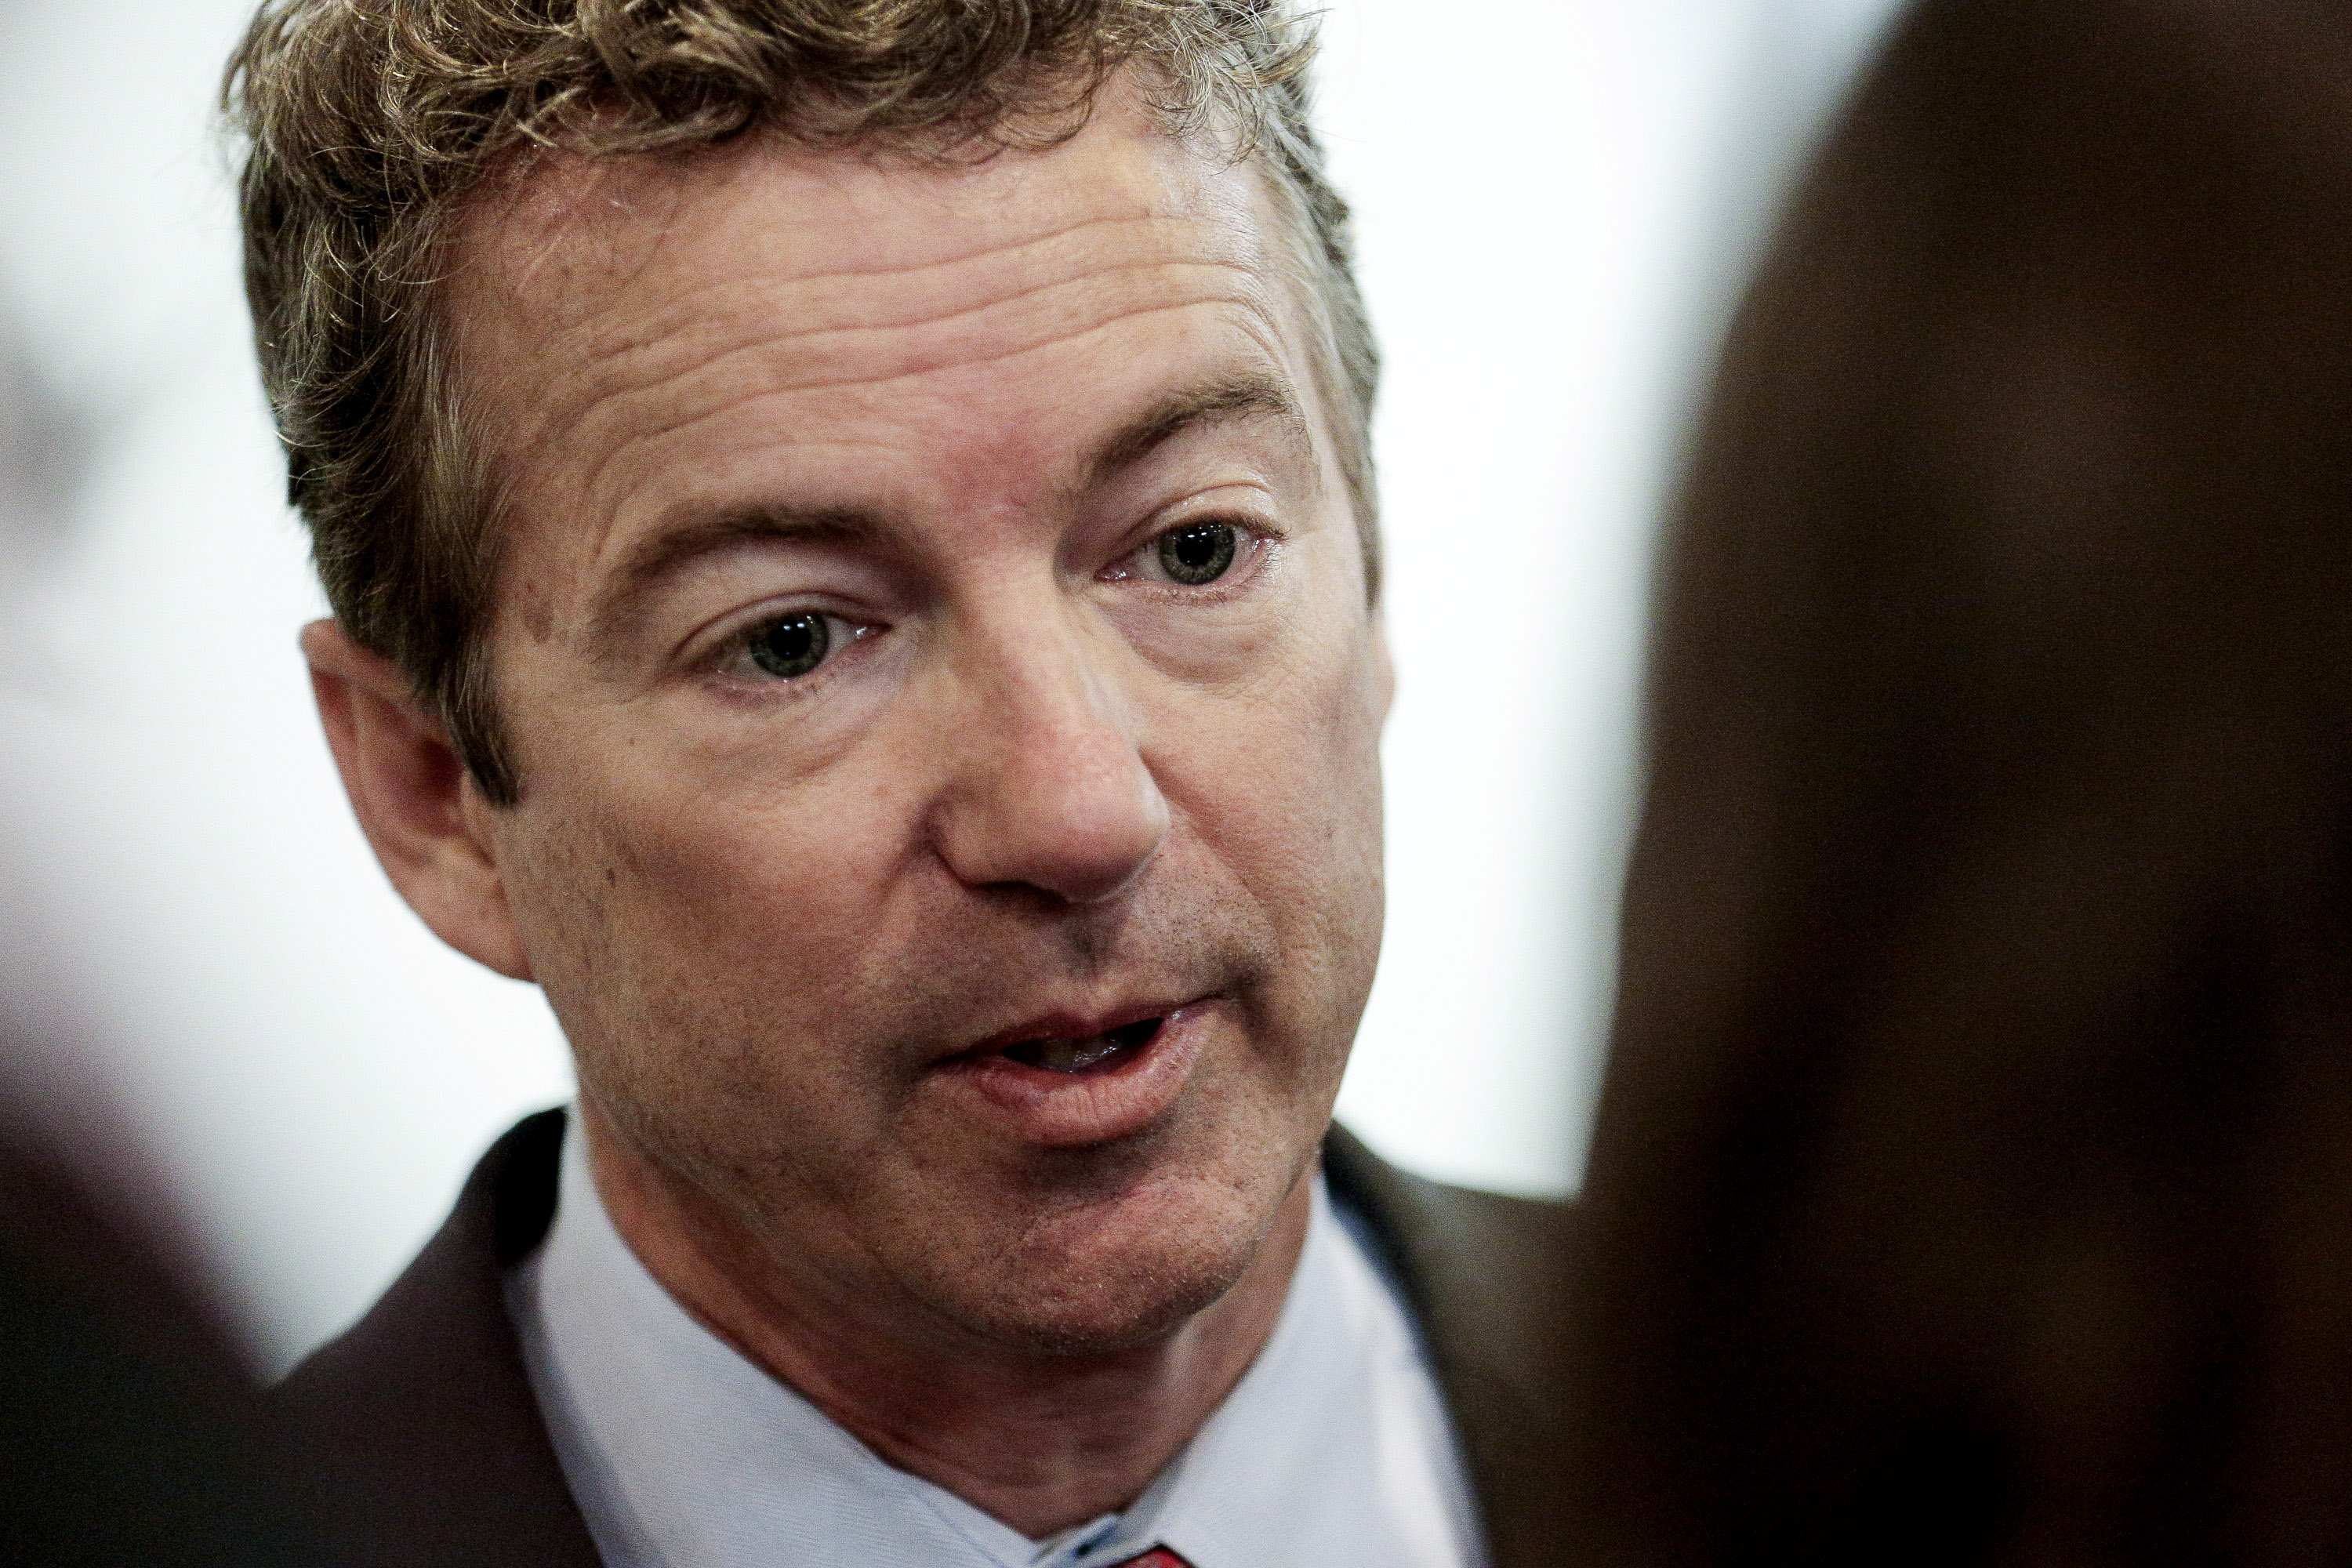 U.S. Senator Rand Paul on March 19, 2013 in Washington, D.C.